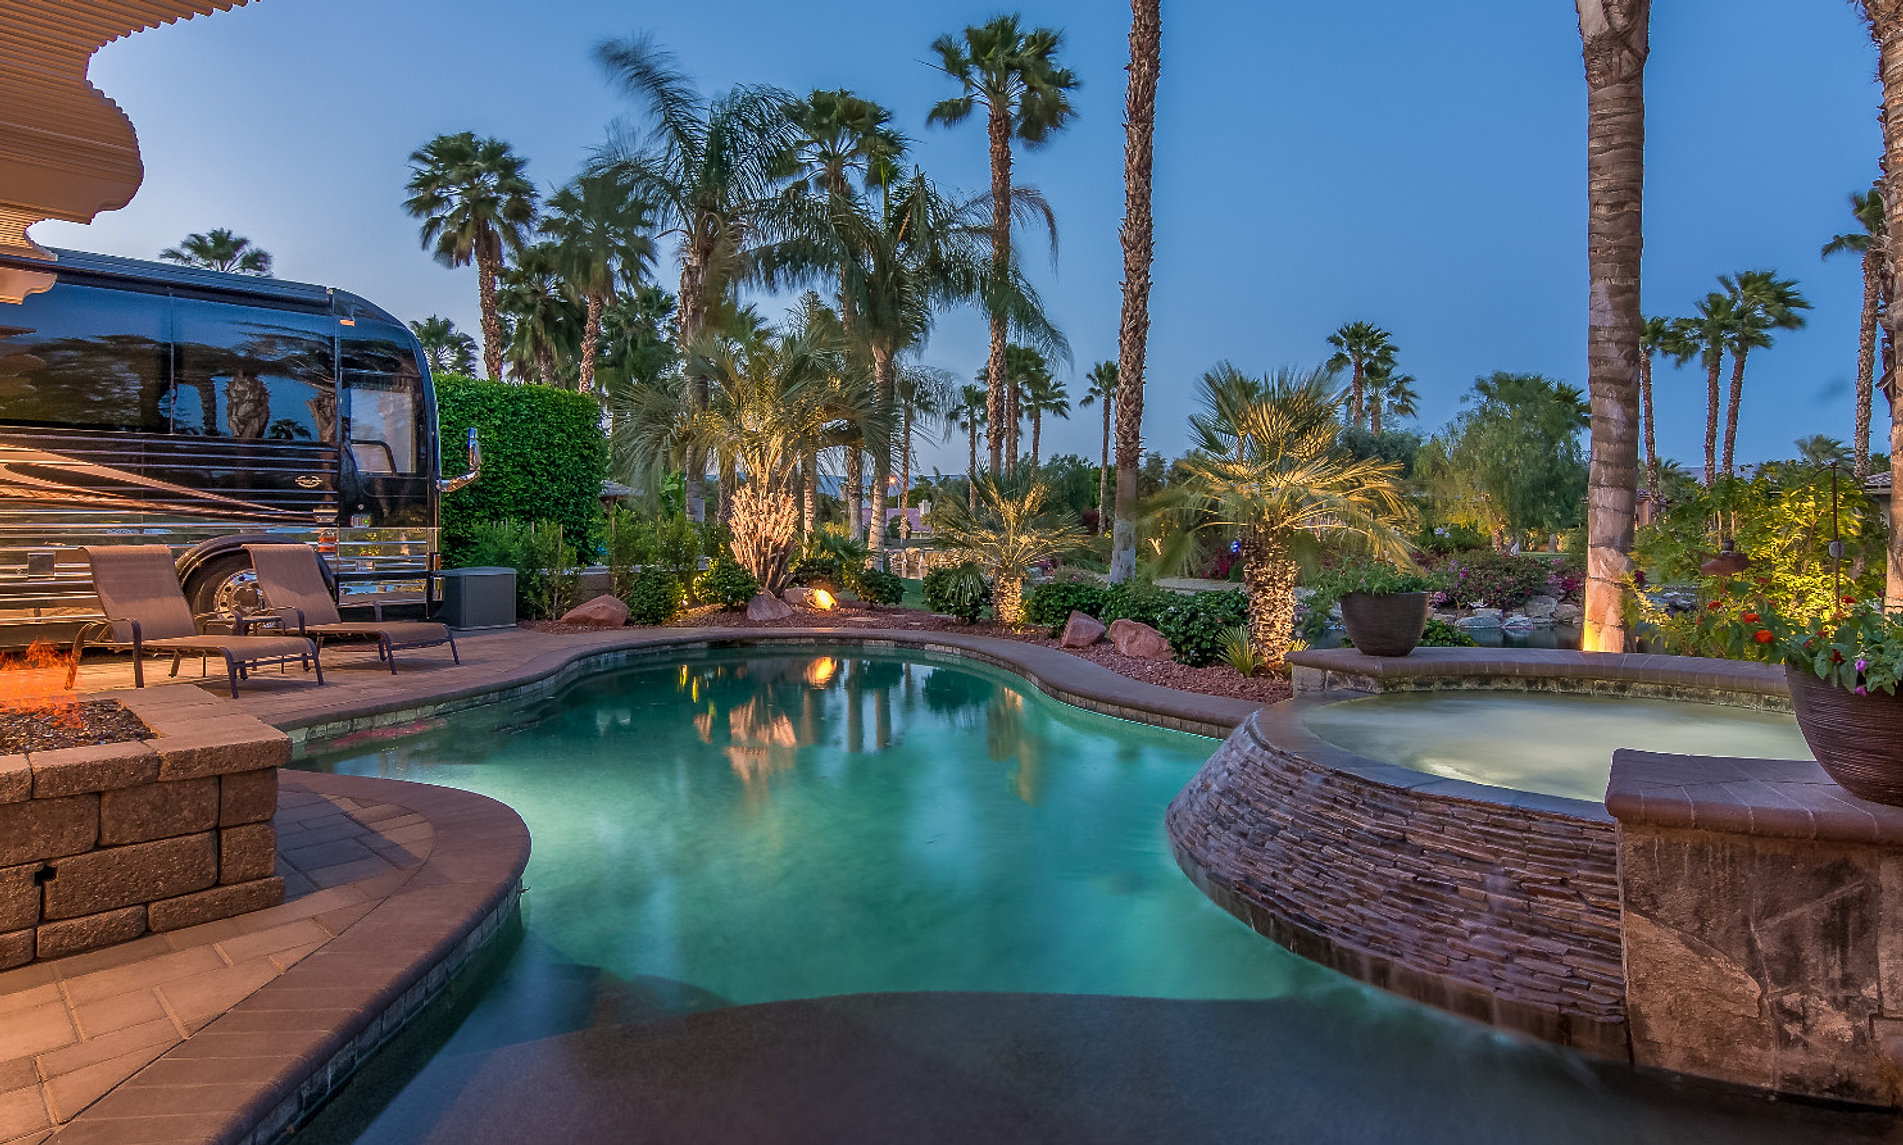 Southern California Luxury Resorts: Desert Shores Motorcoach Resort